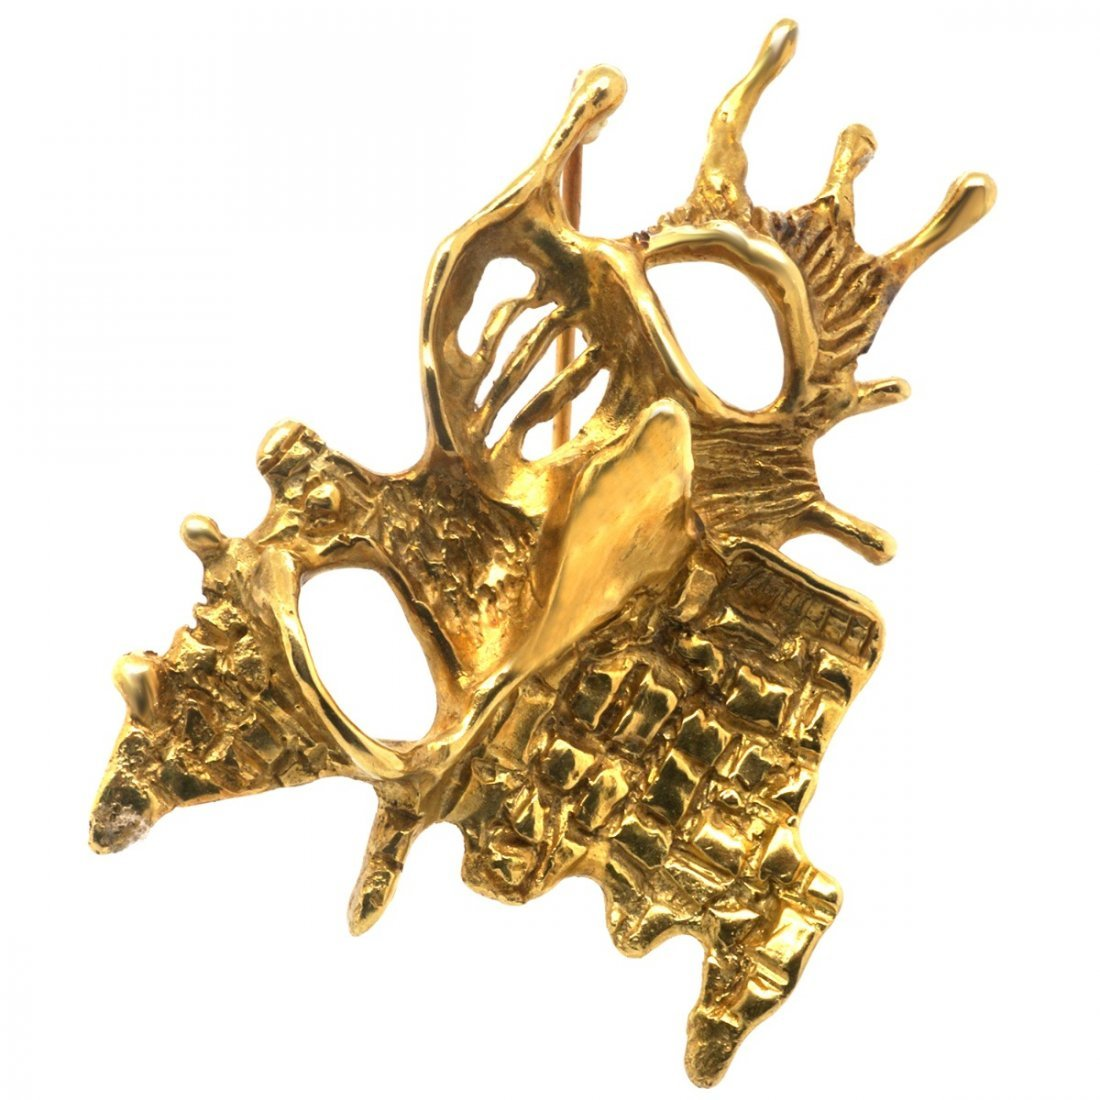 18 KARAT GOLD BROOCH